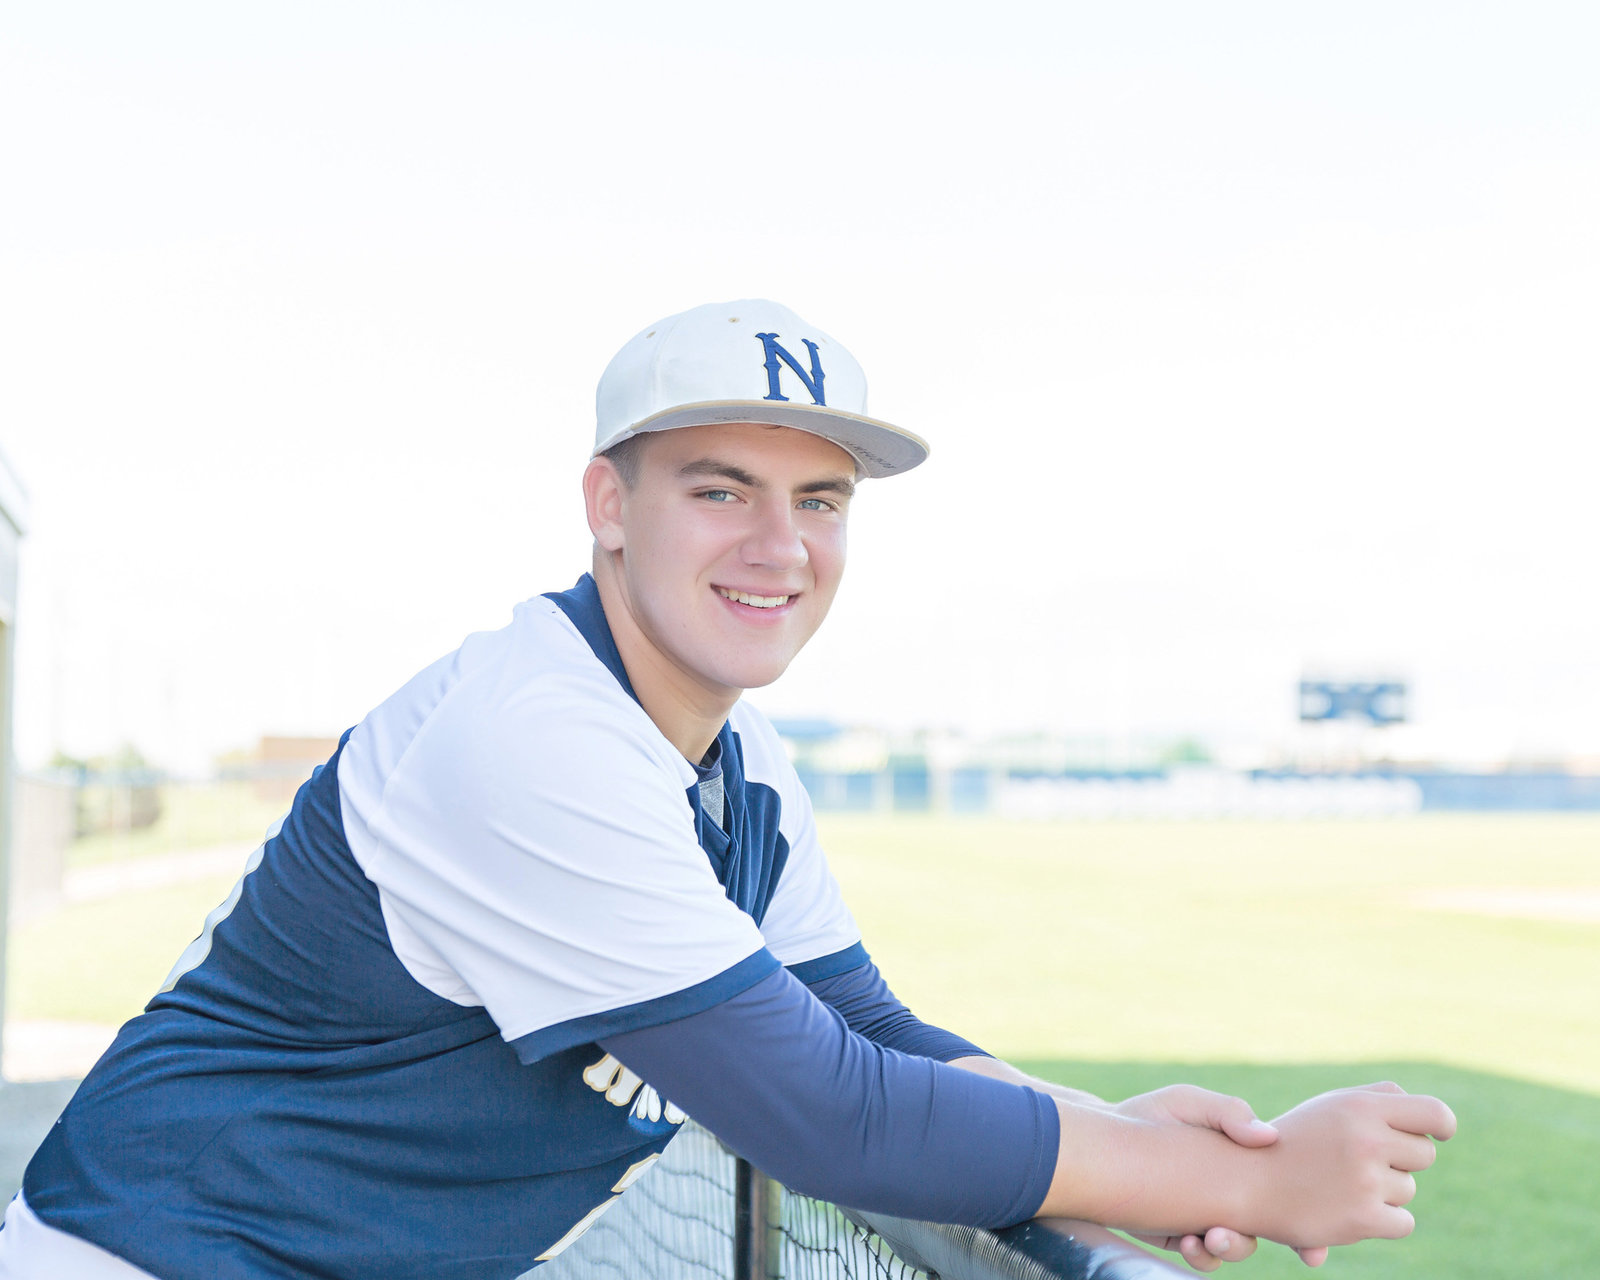 Senior guy-baseball field-baseball uniform-navy and white